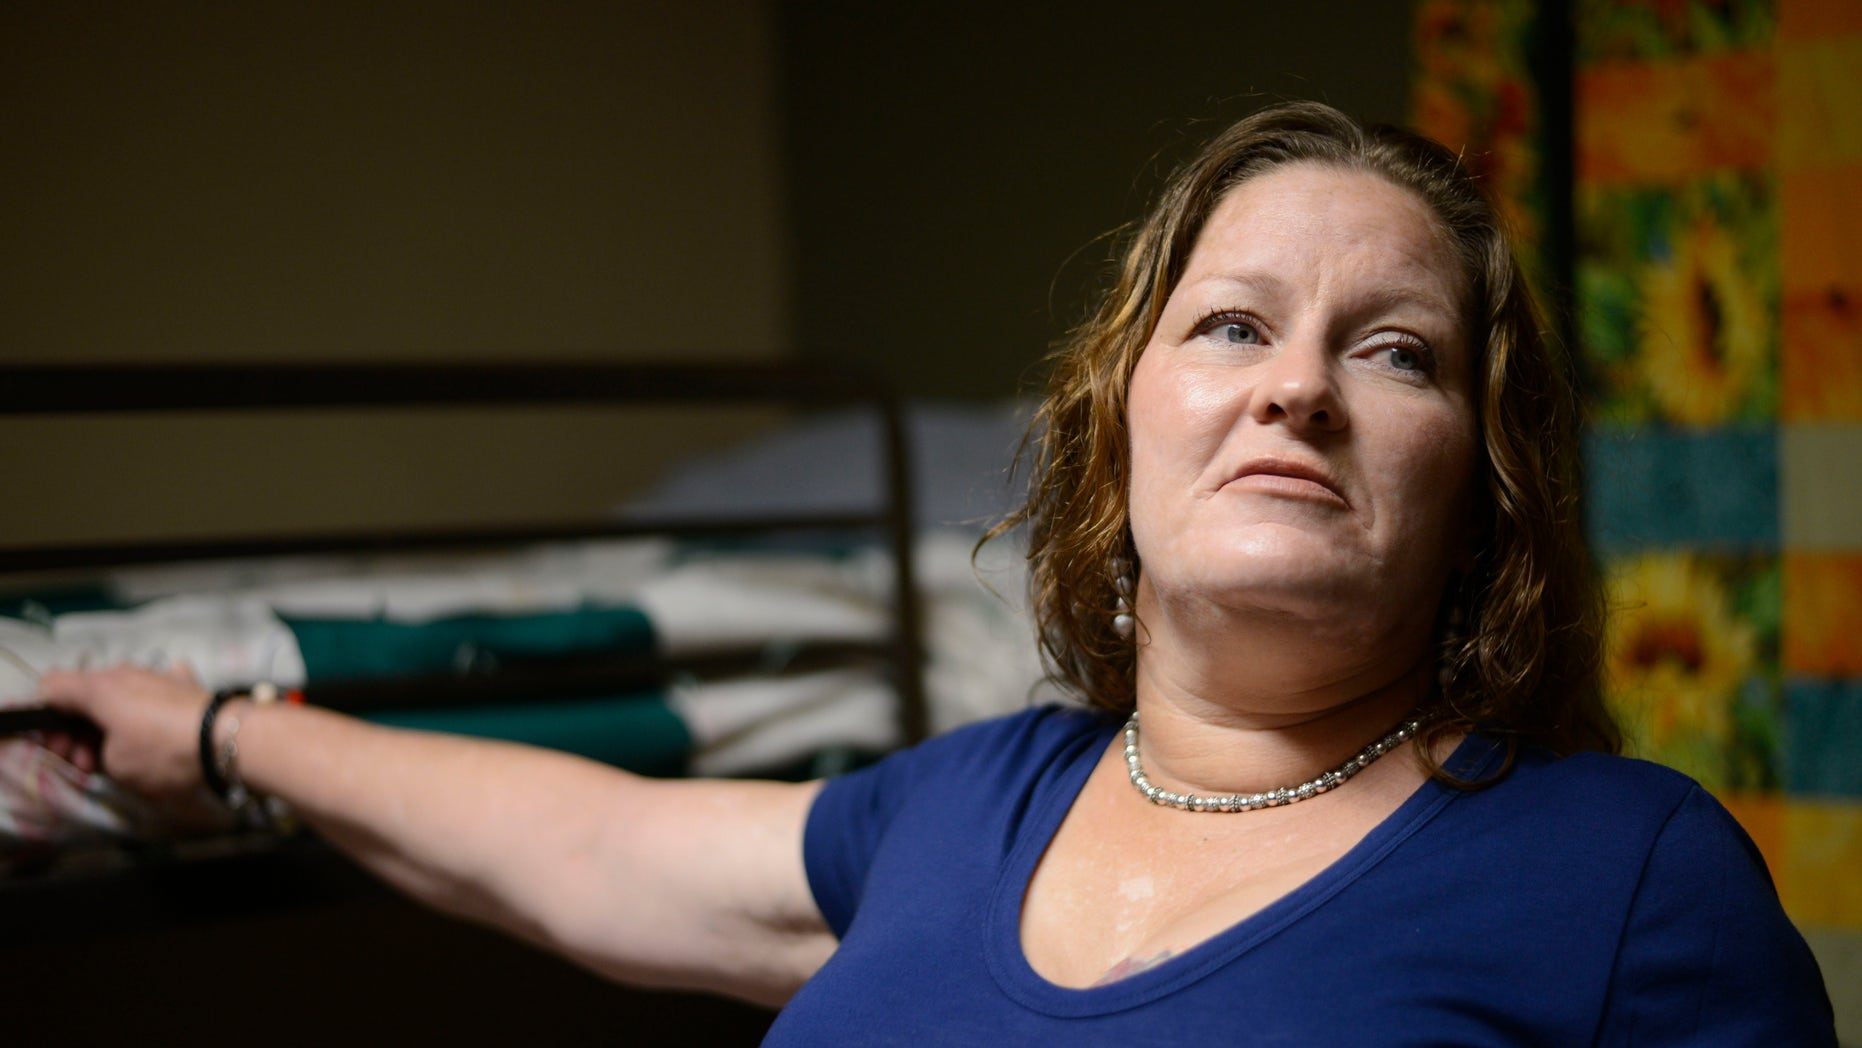 Susan Contreras stands next to her bed in a Phoenix-area shelter for victims of domestic violence on Wednesday, Aug. 3, 2016. Contreras is part of a unique program at the Barrow Neurological Institute in Phoenix that aims to assist abuse survivors who have suffered head trauma. (AP Photo/Beatriz Costa-Lima)